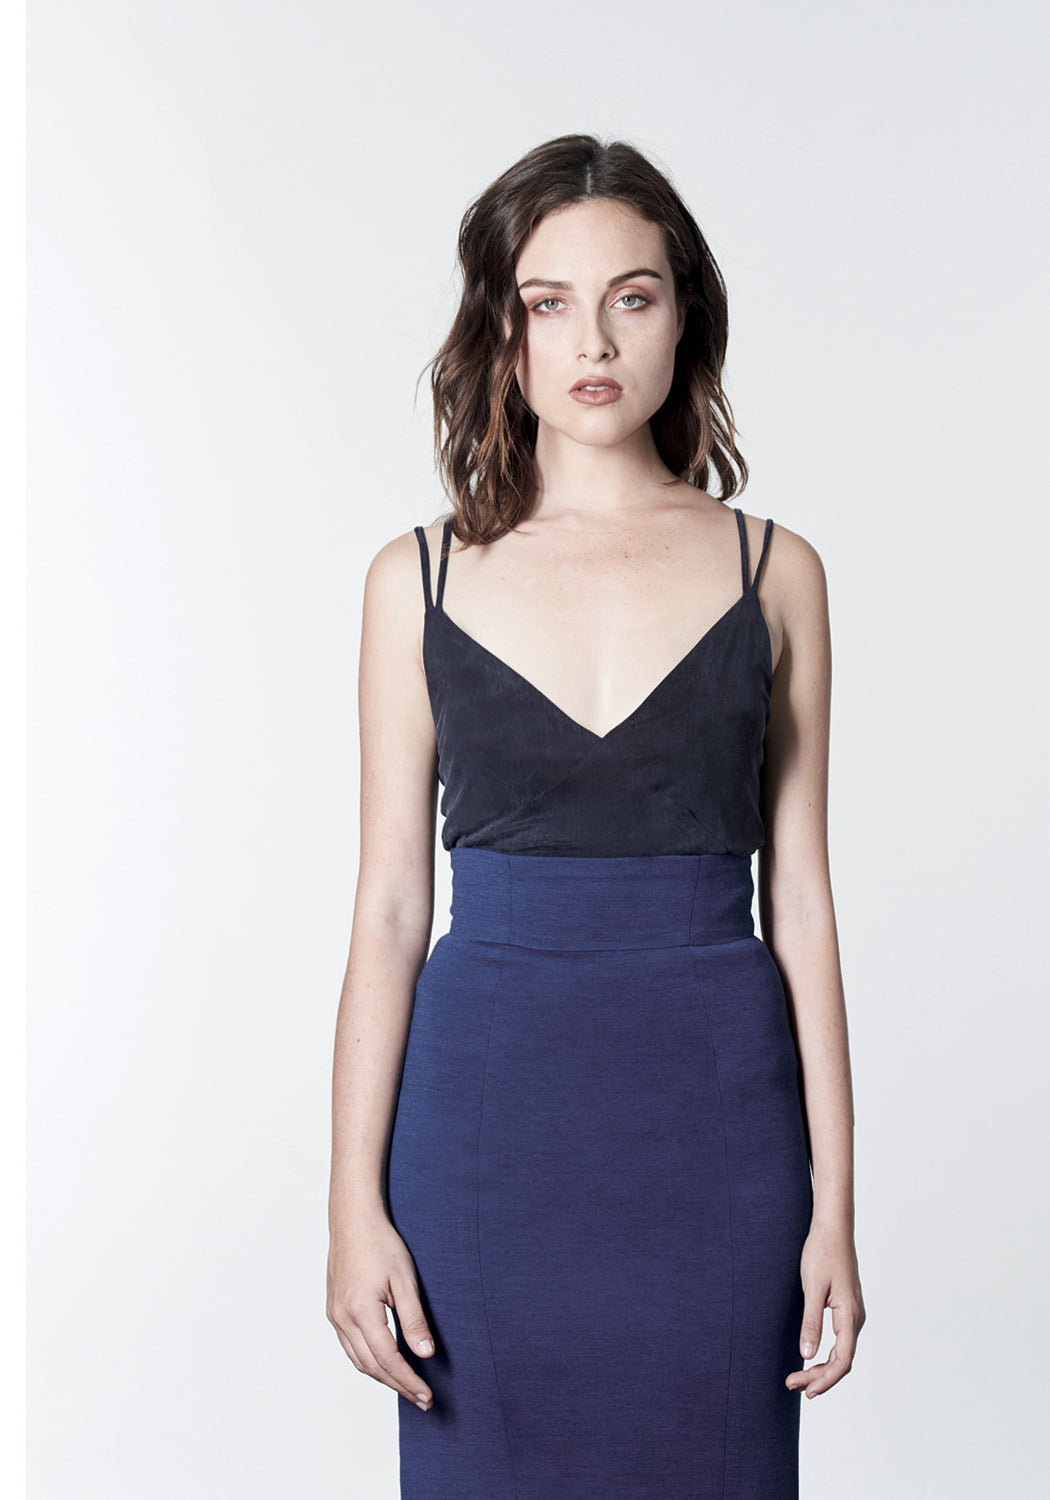 Navy blue stretch cupro camisole top.